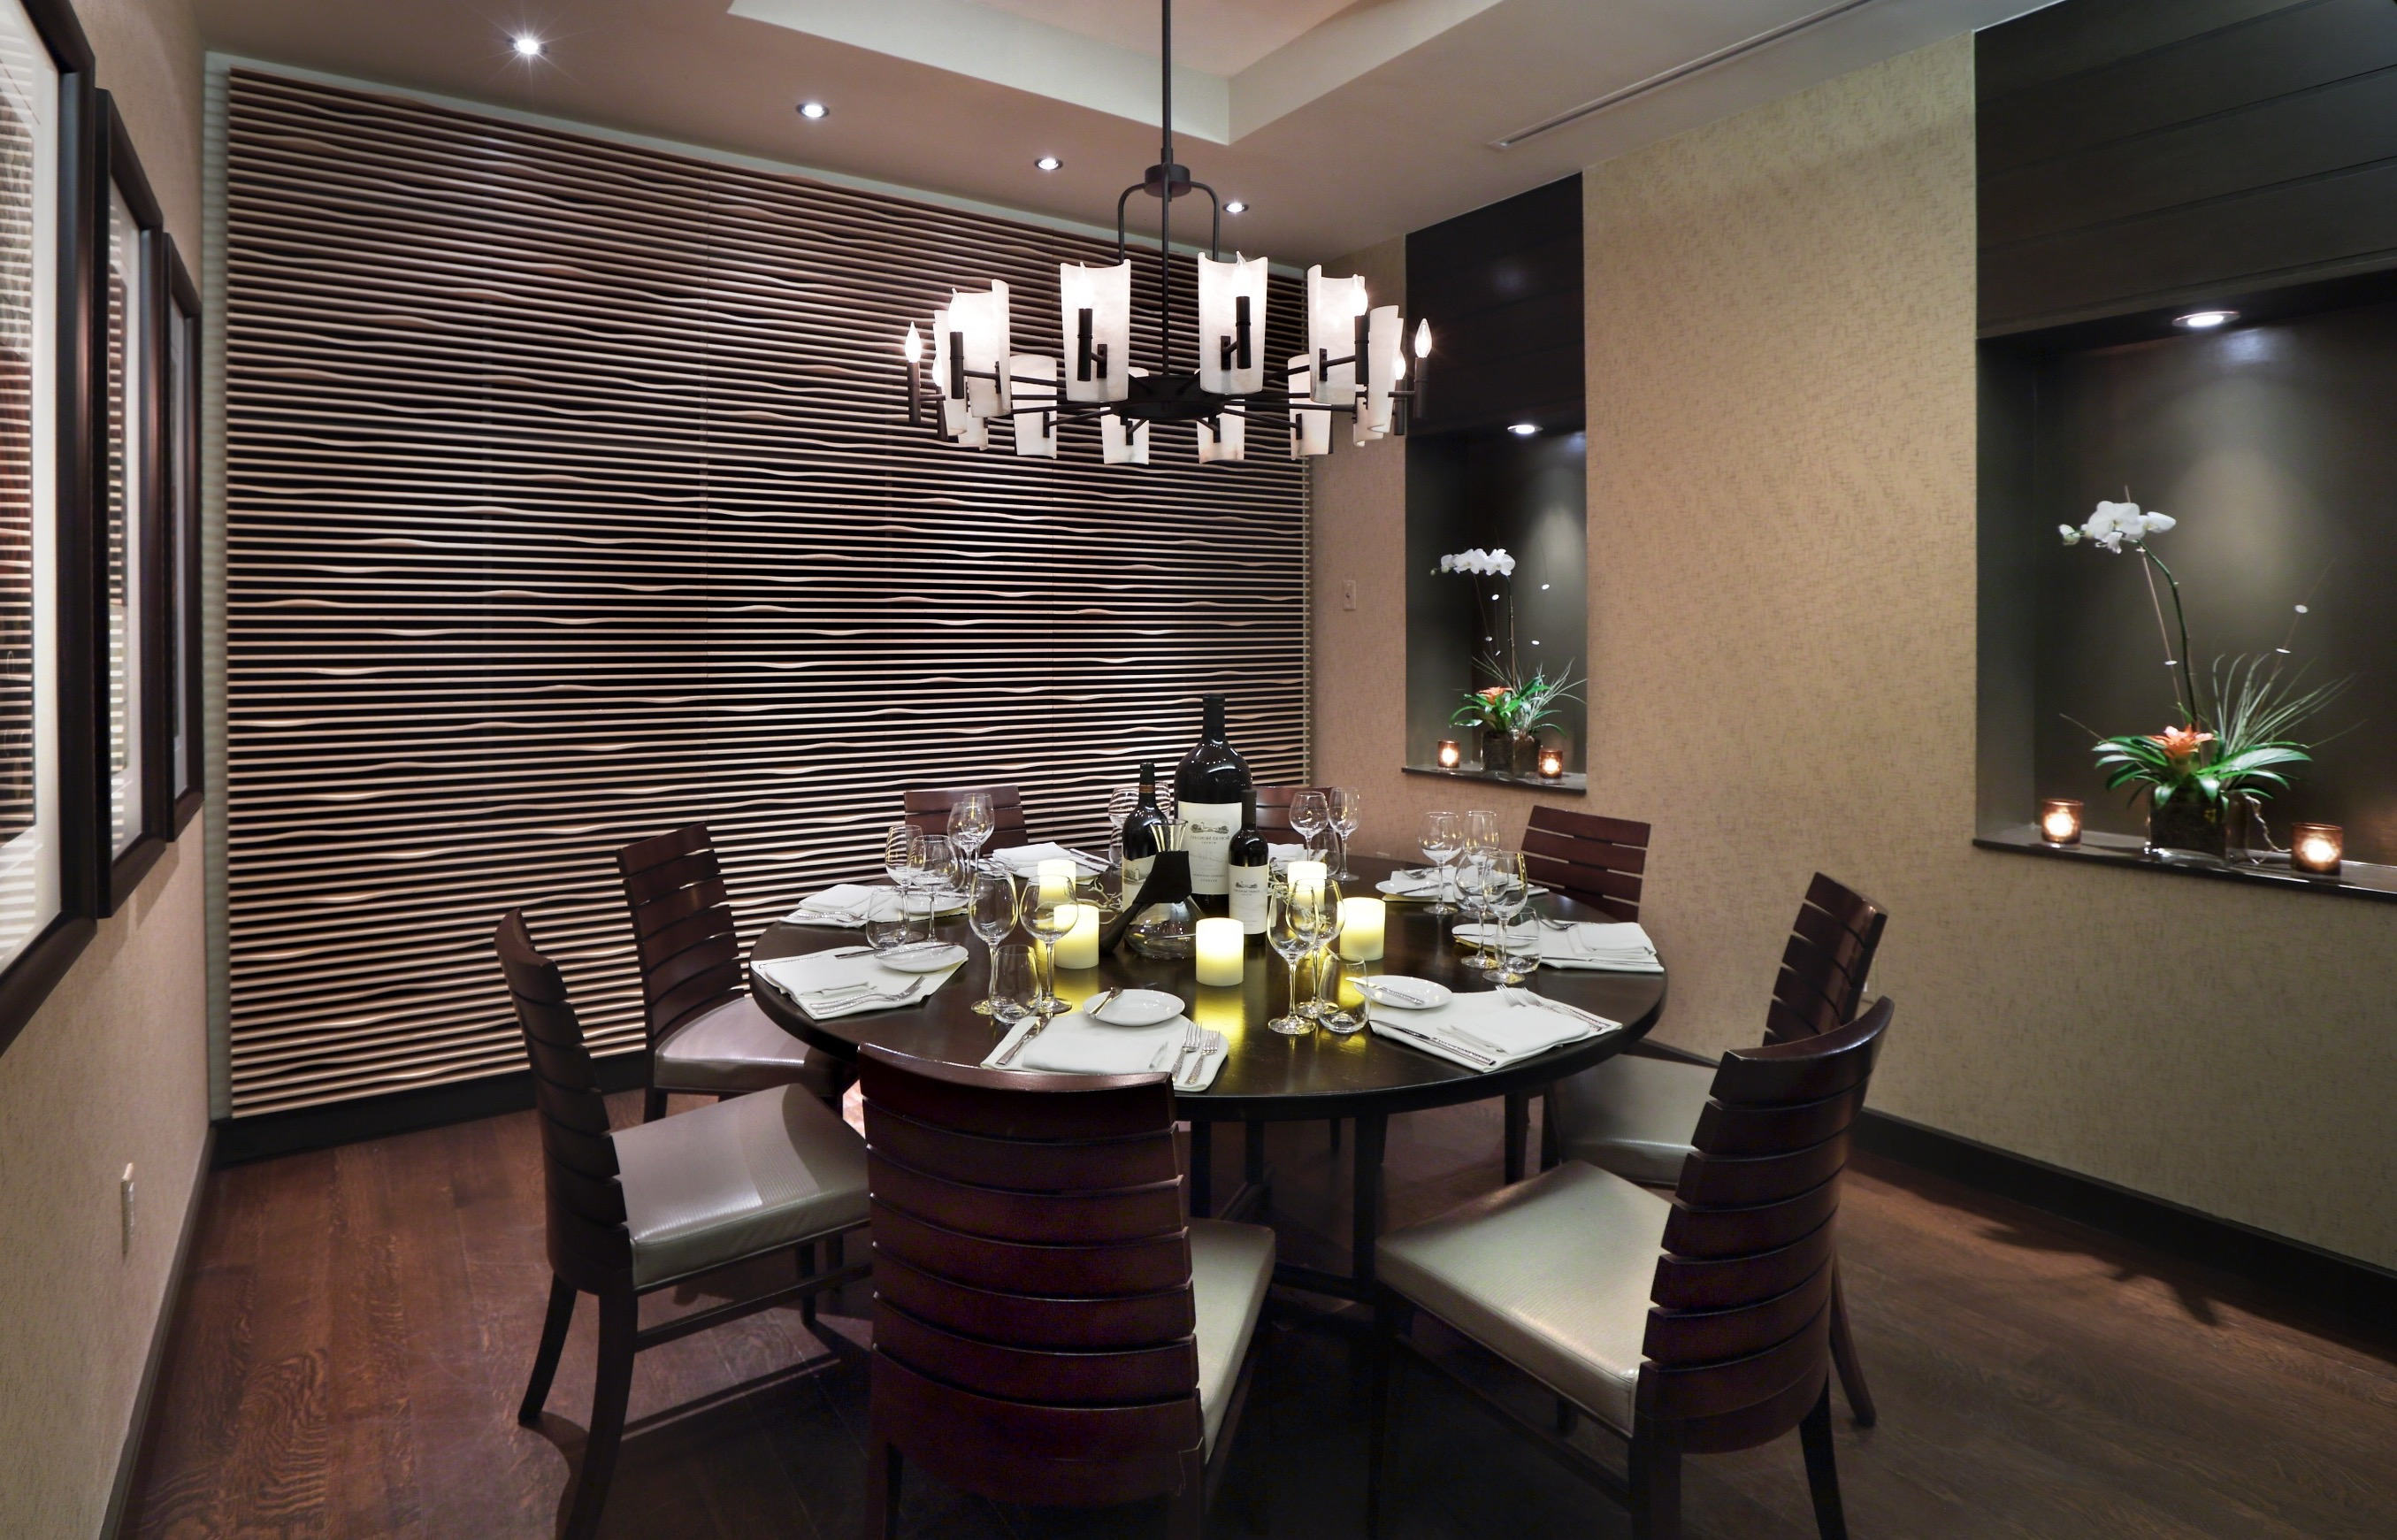 Contemporary Dining Room With Black Chandelier (Image 4 of 10)